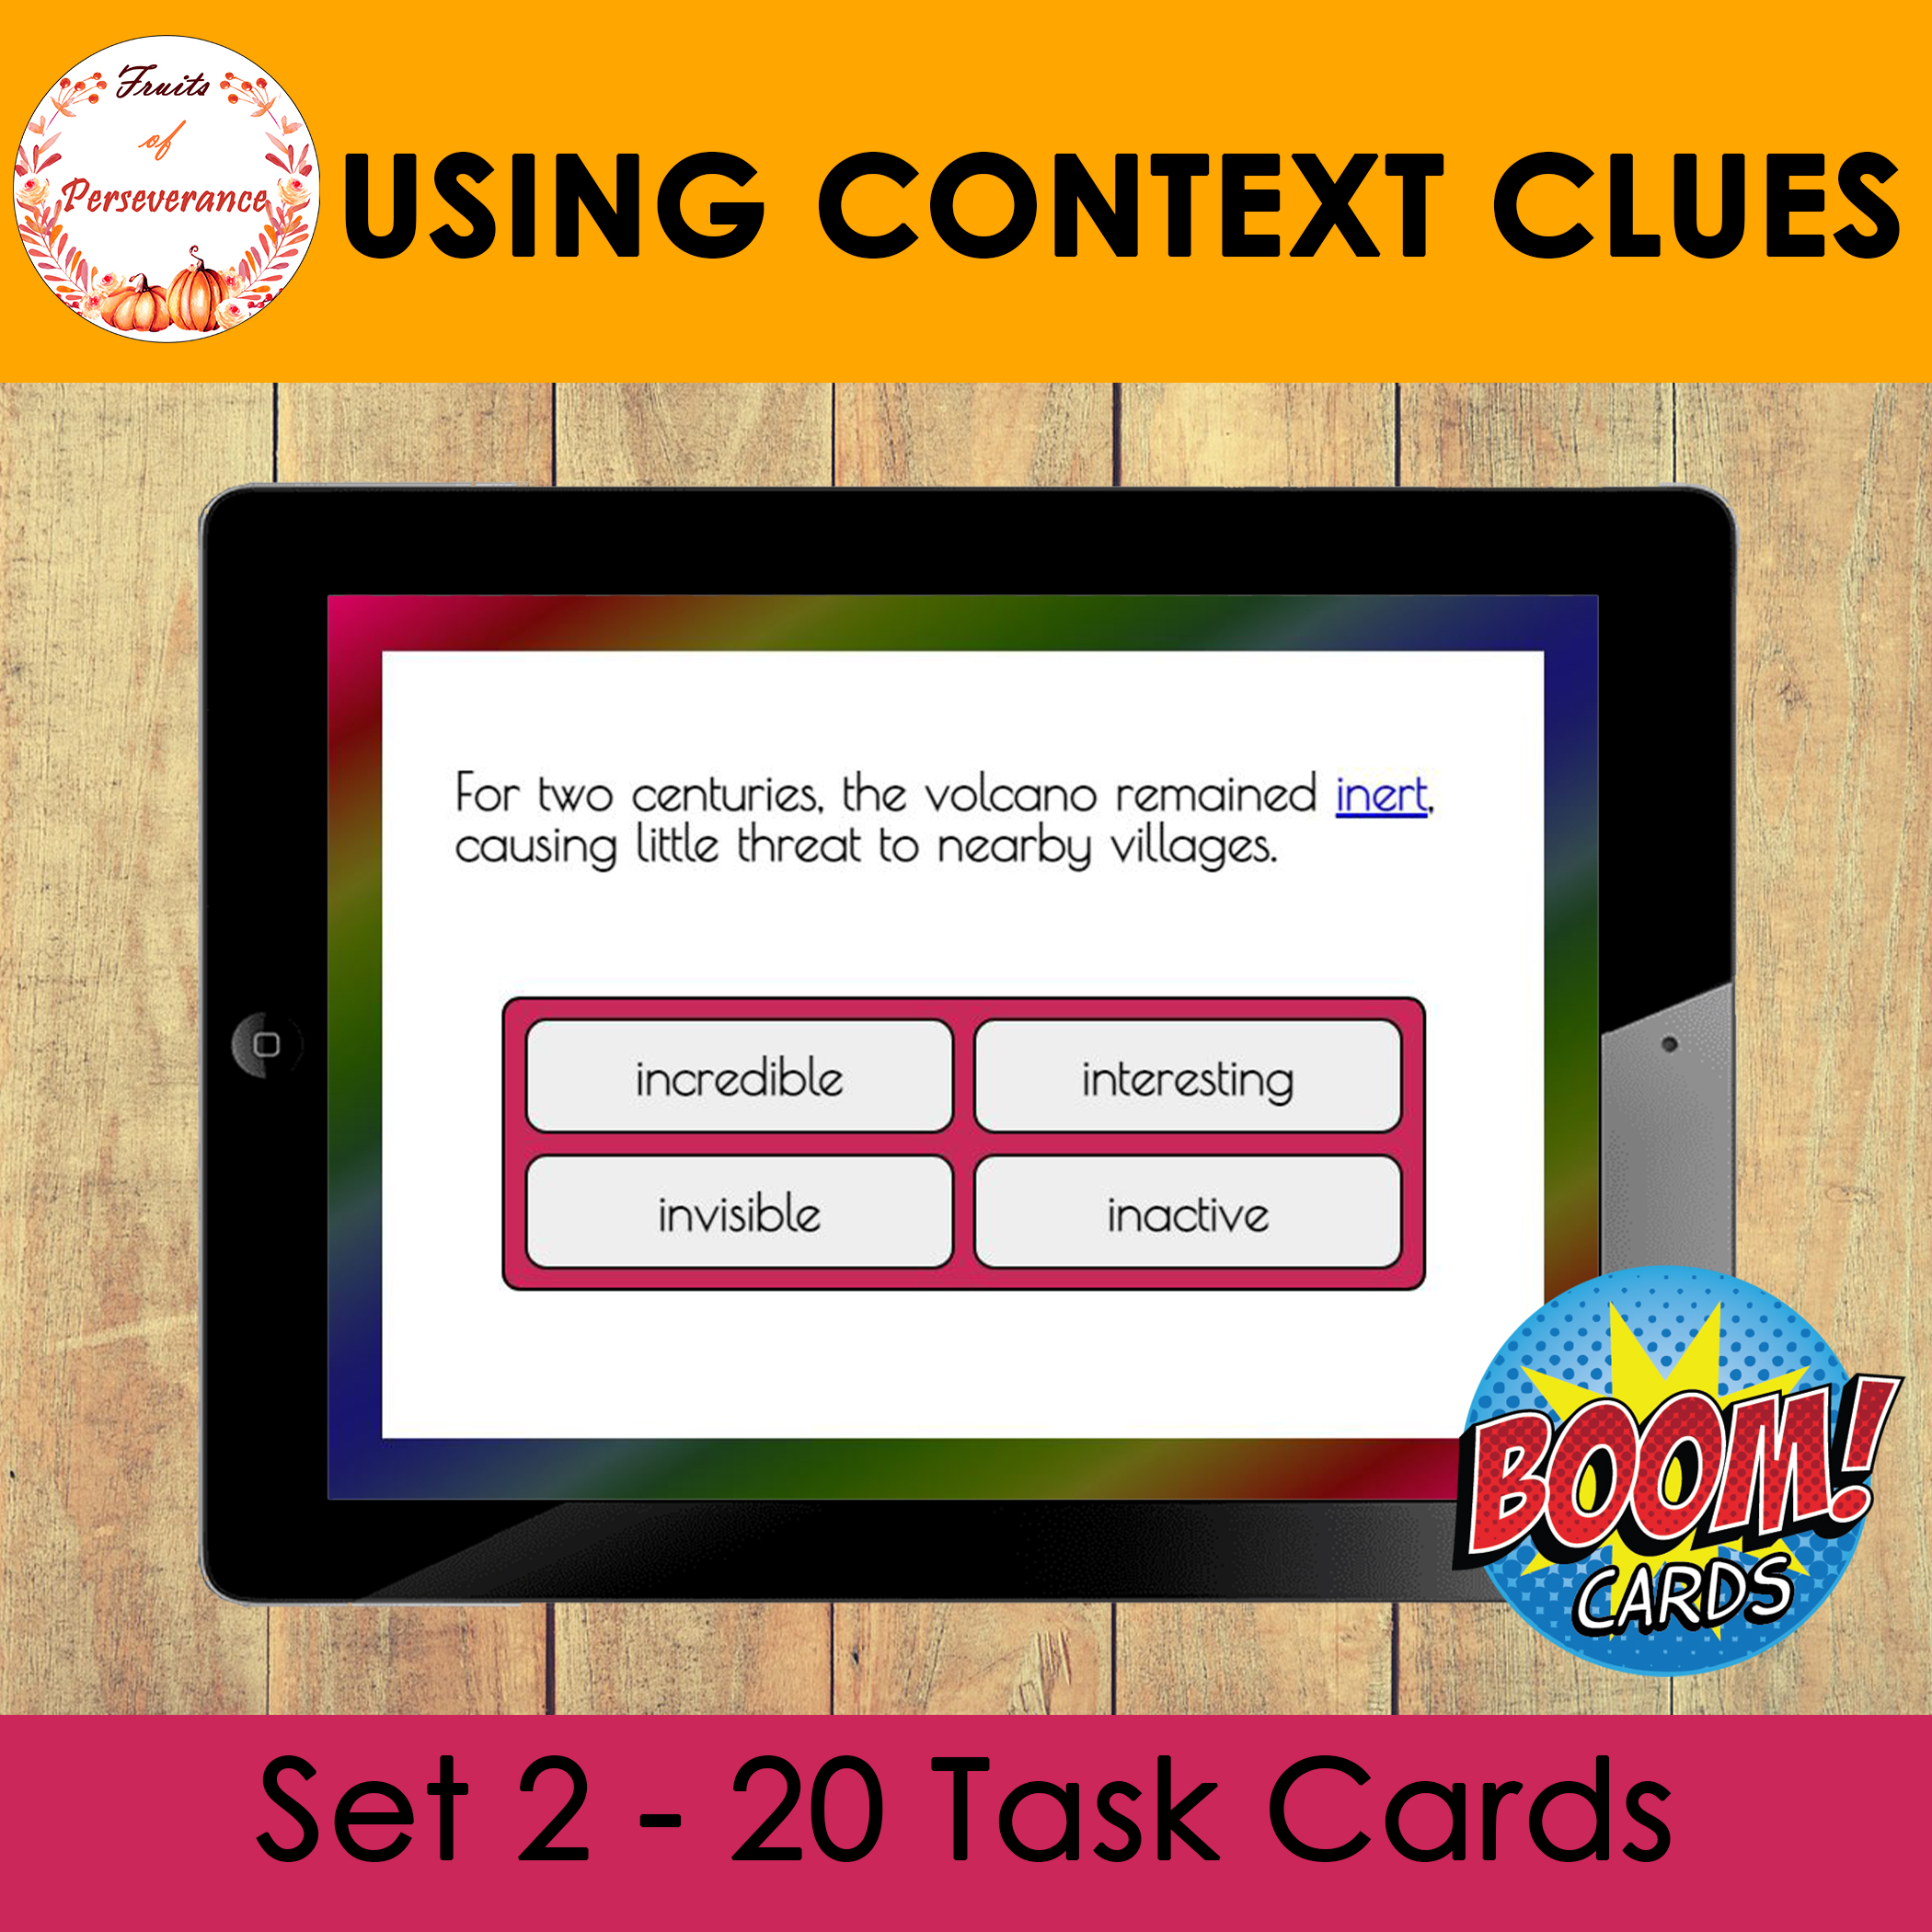 Using Context Clues Boom Cards™ Set 2